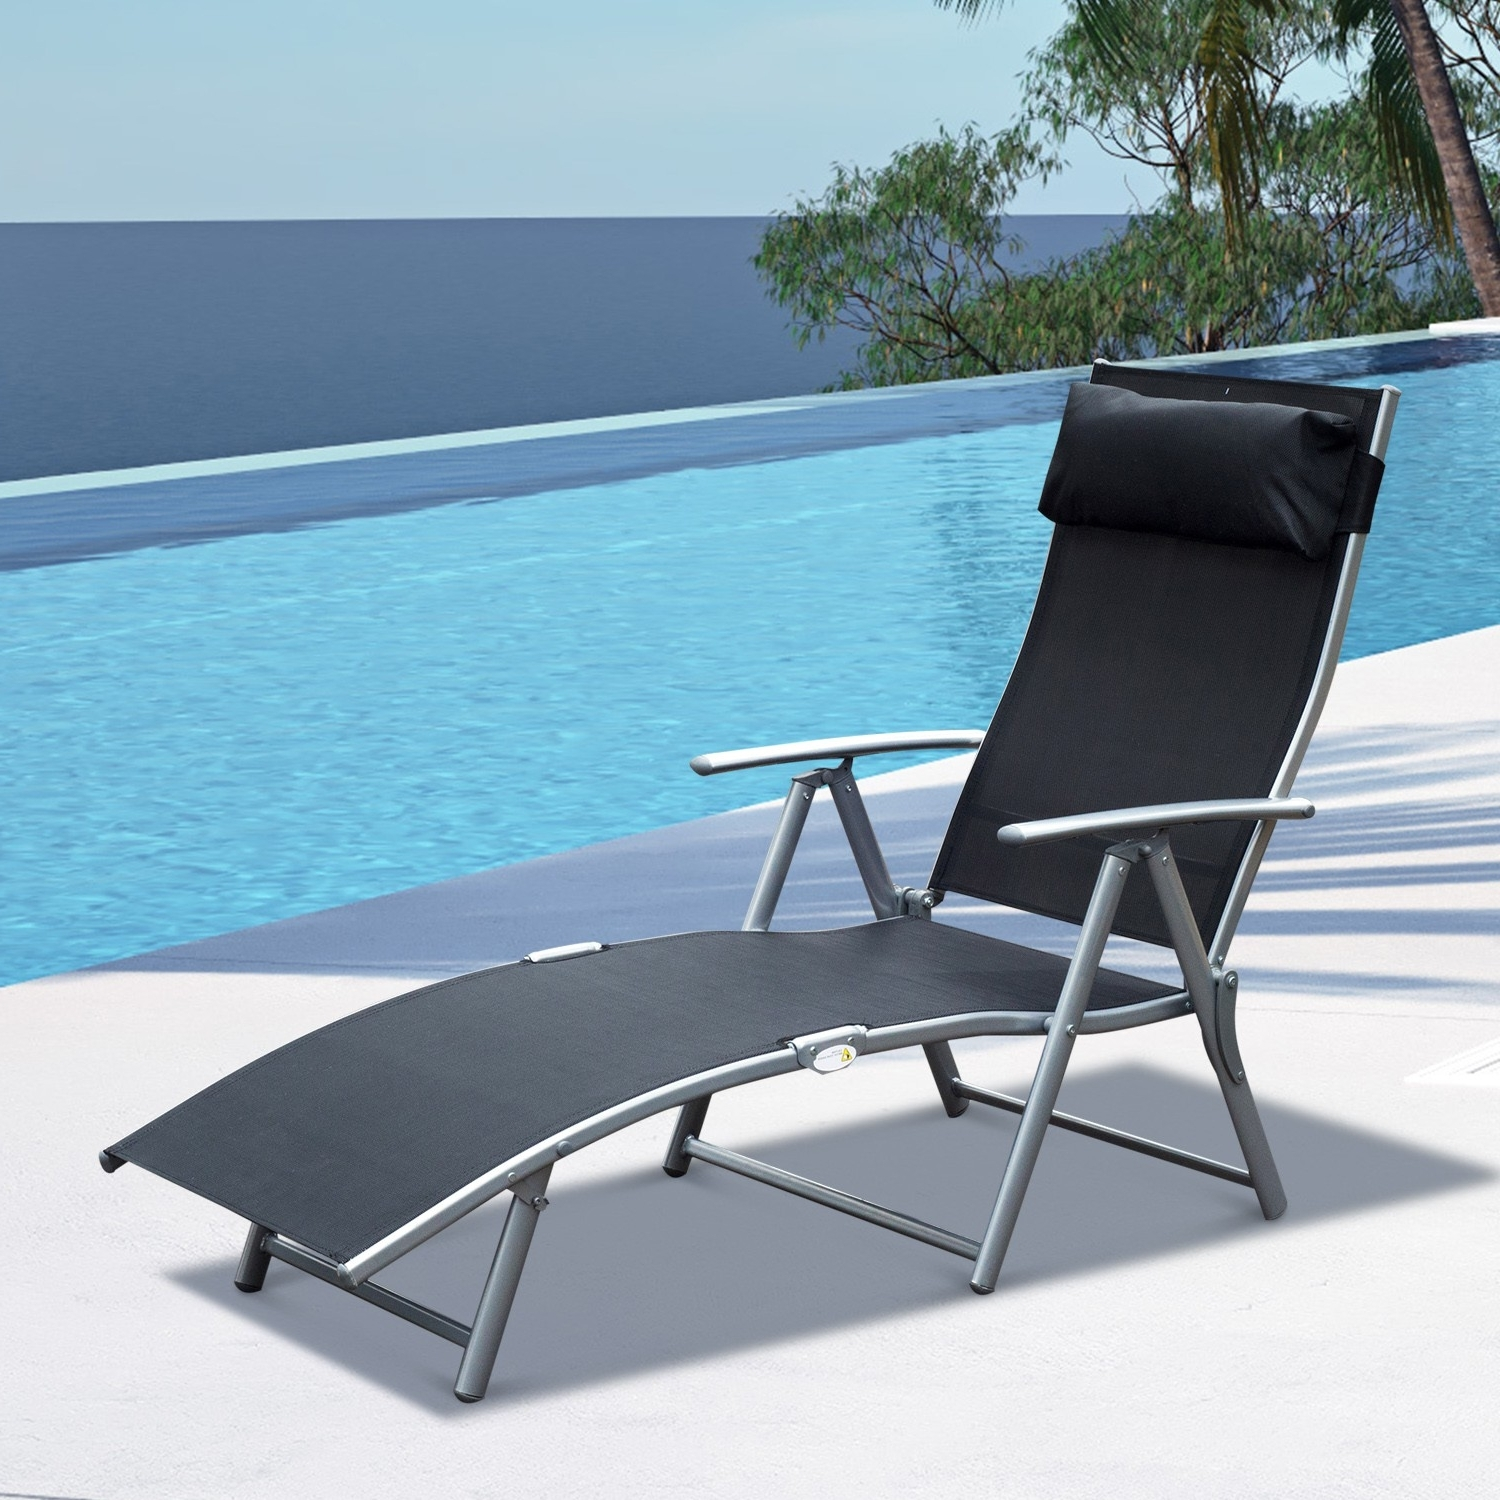 Most Up To Date Lounge Chair : Folding Lawn Chairs Sturdy Outdoor Chaise Lounge In Heavy Duty Chaise Lounge Chairs (View 12 of 15)